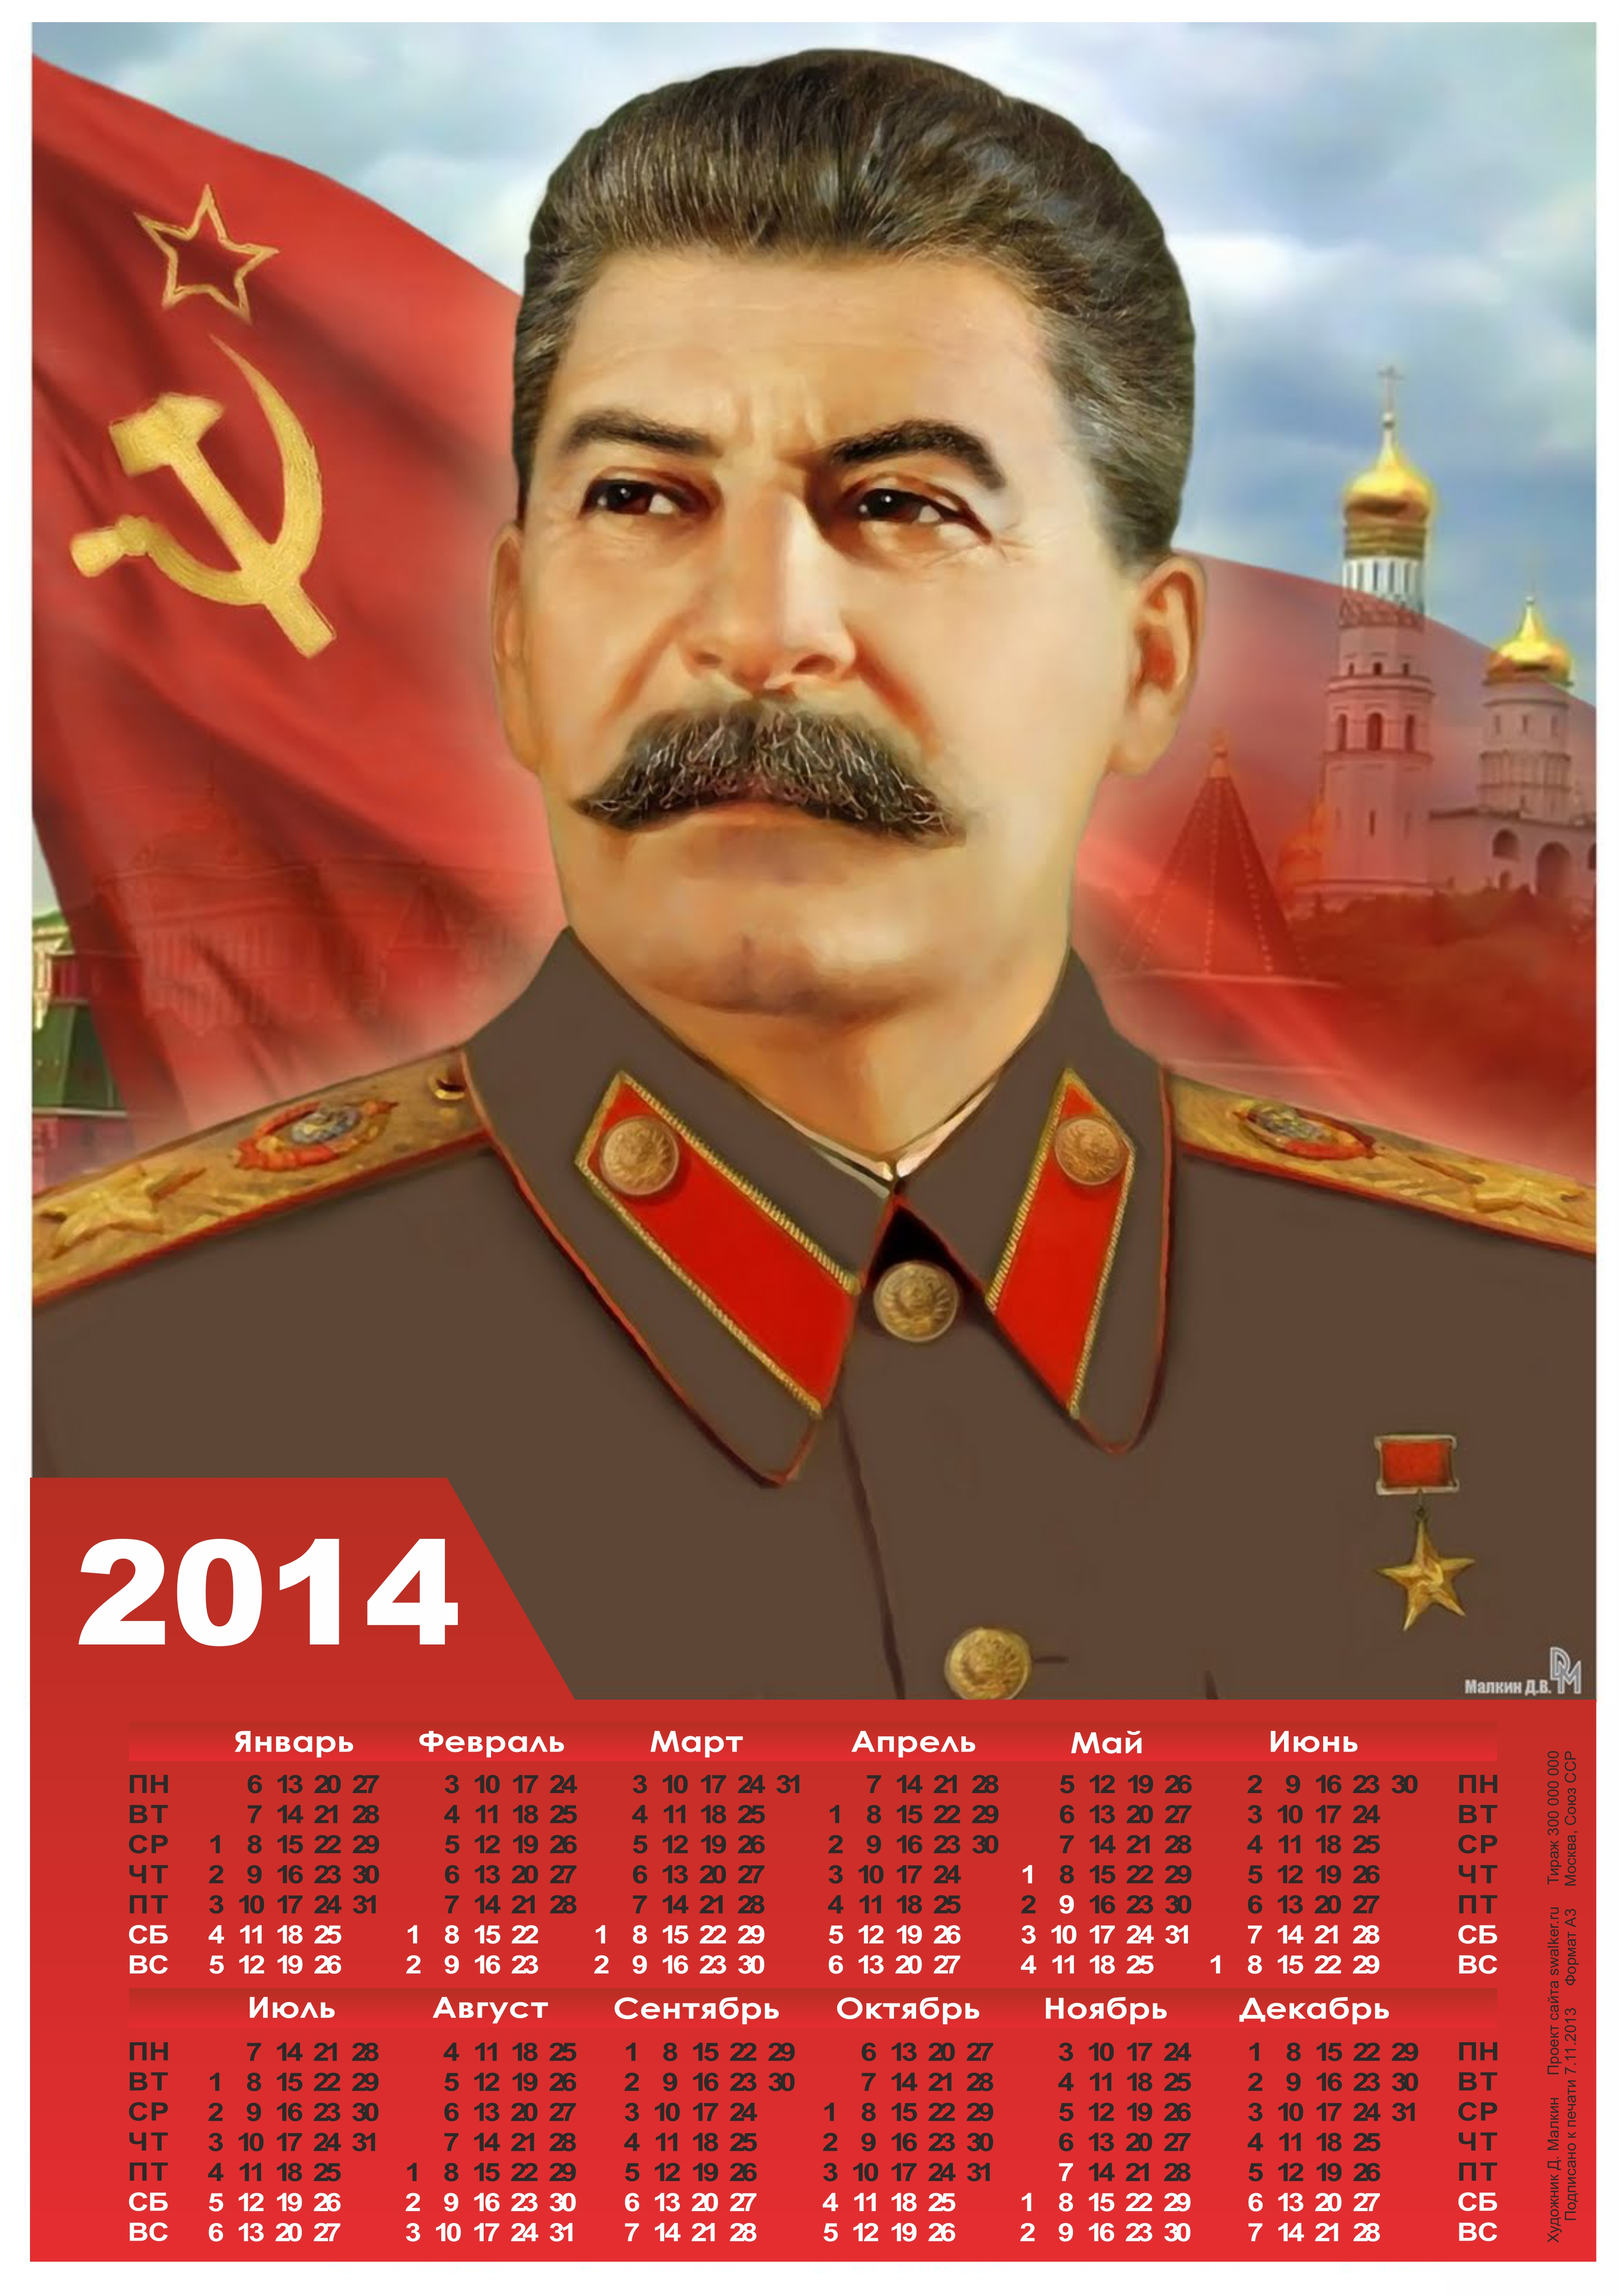 http://swalker.org/uploads/posts/2013-11/1383830341_swalker.org_stalin-2014.jpg height=844